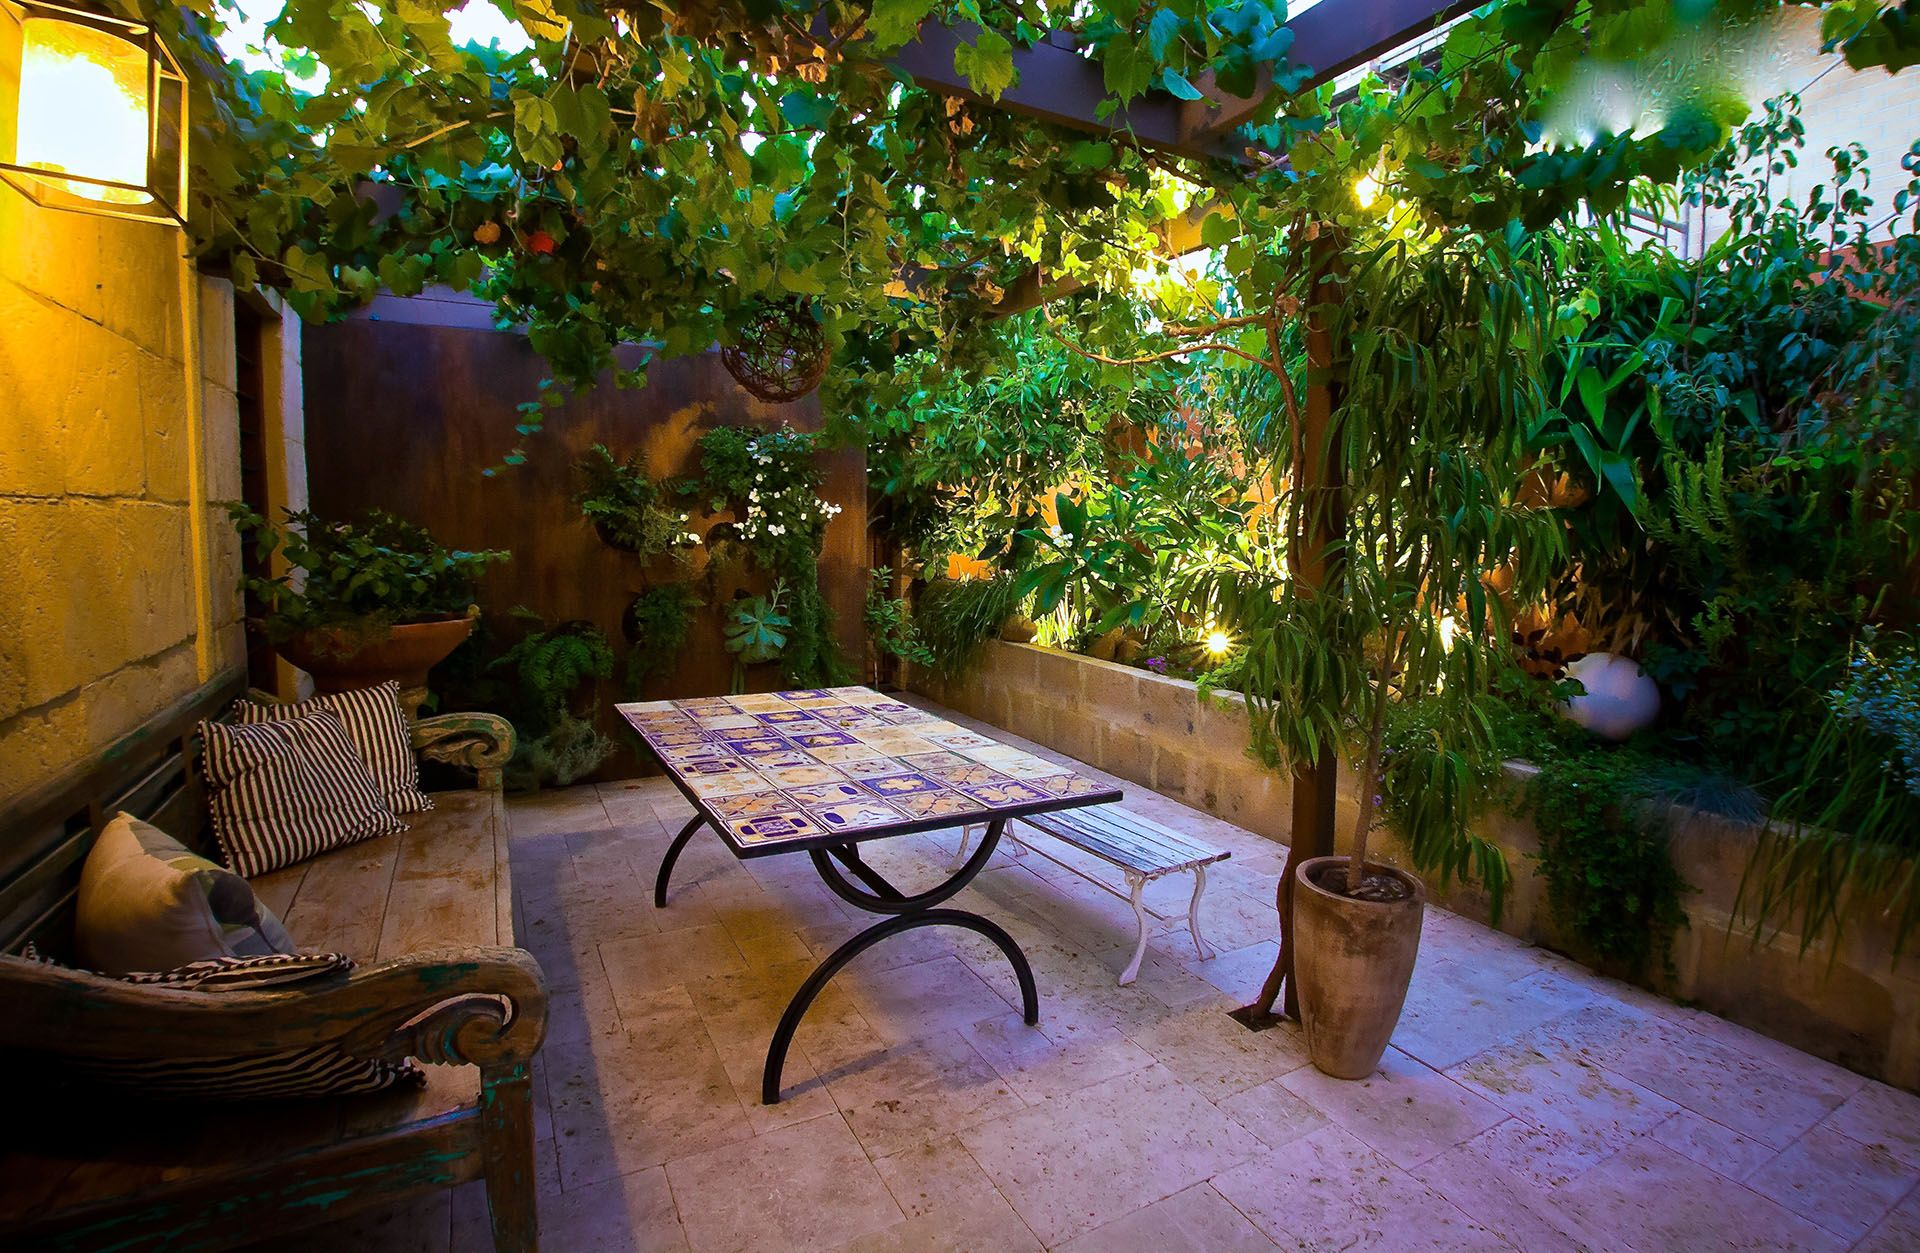 Exterior courtyard renovation mediterranean garden design for Exterior garden designs